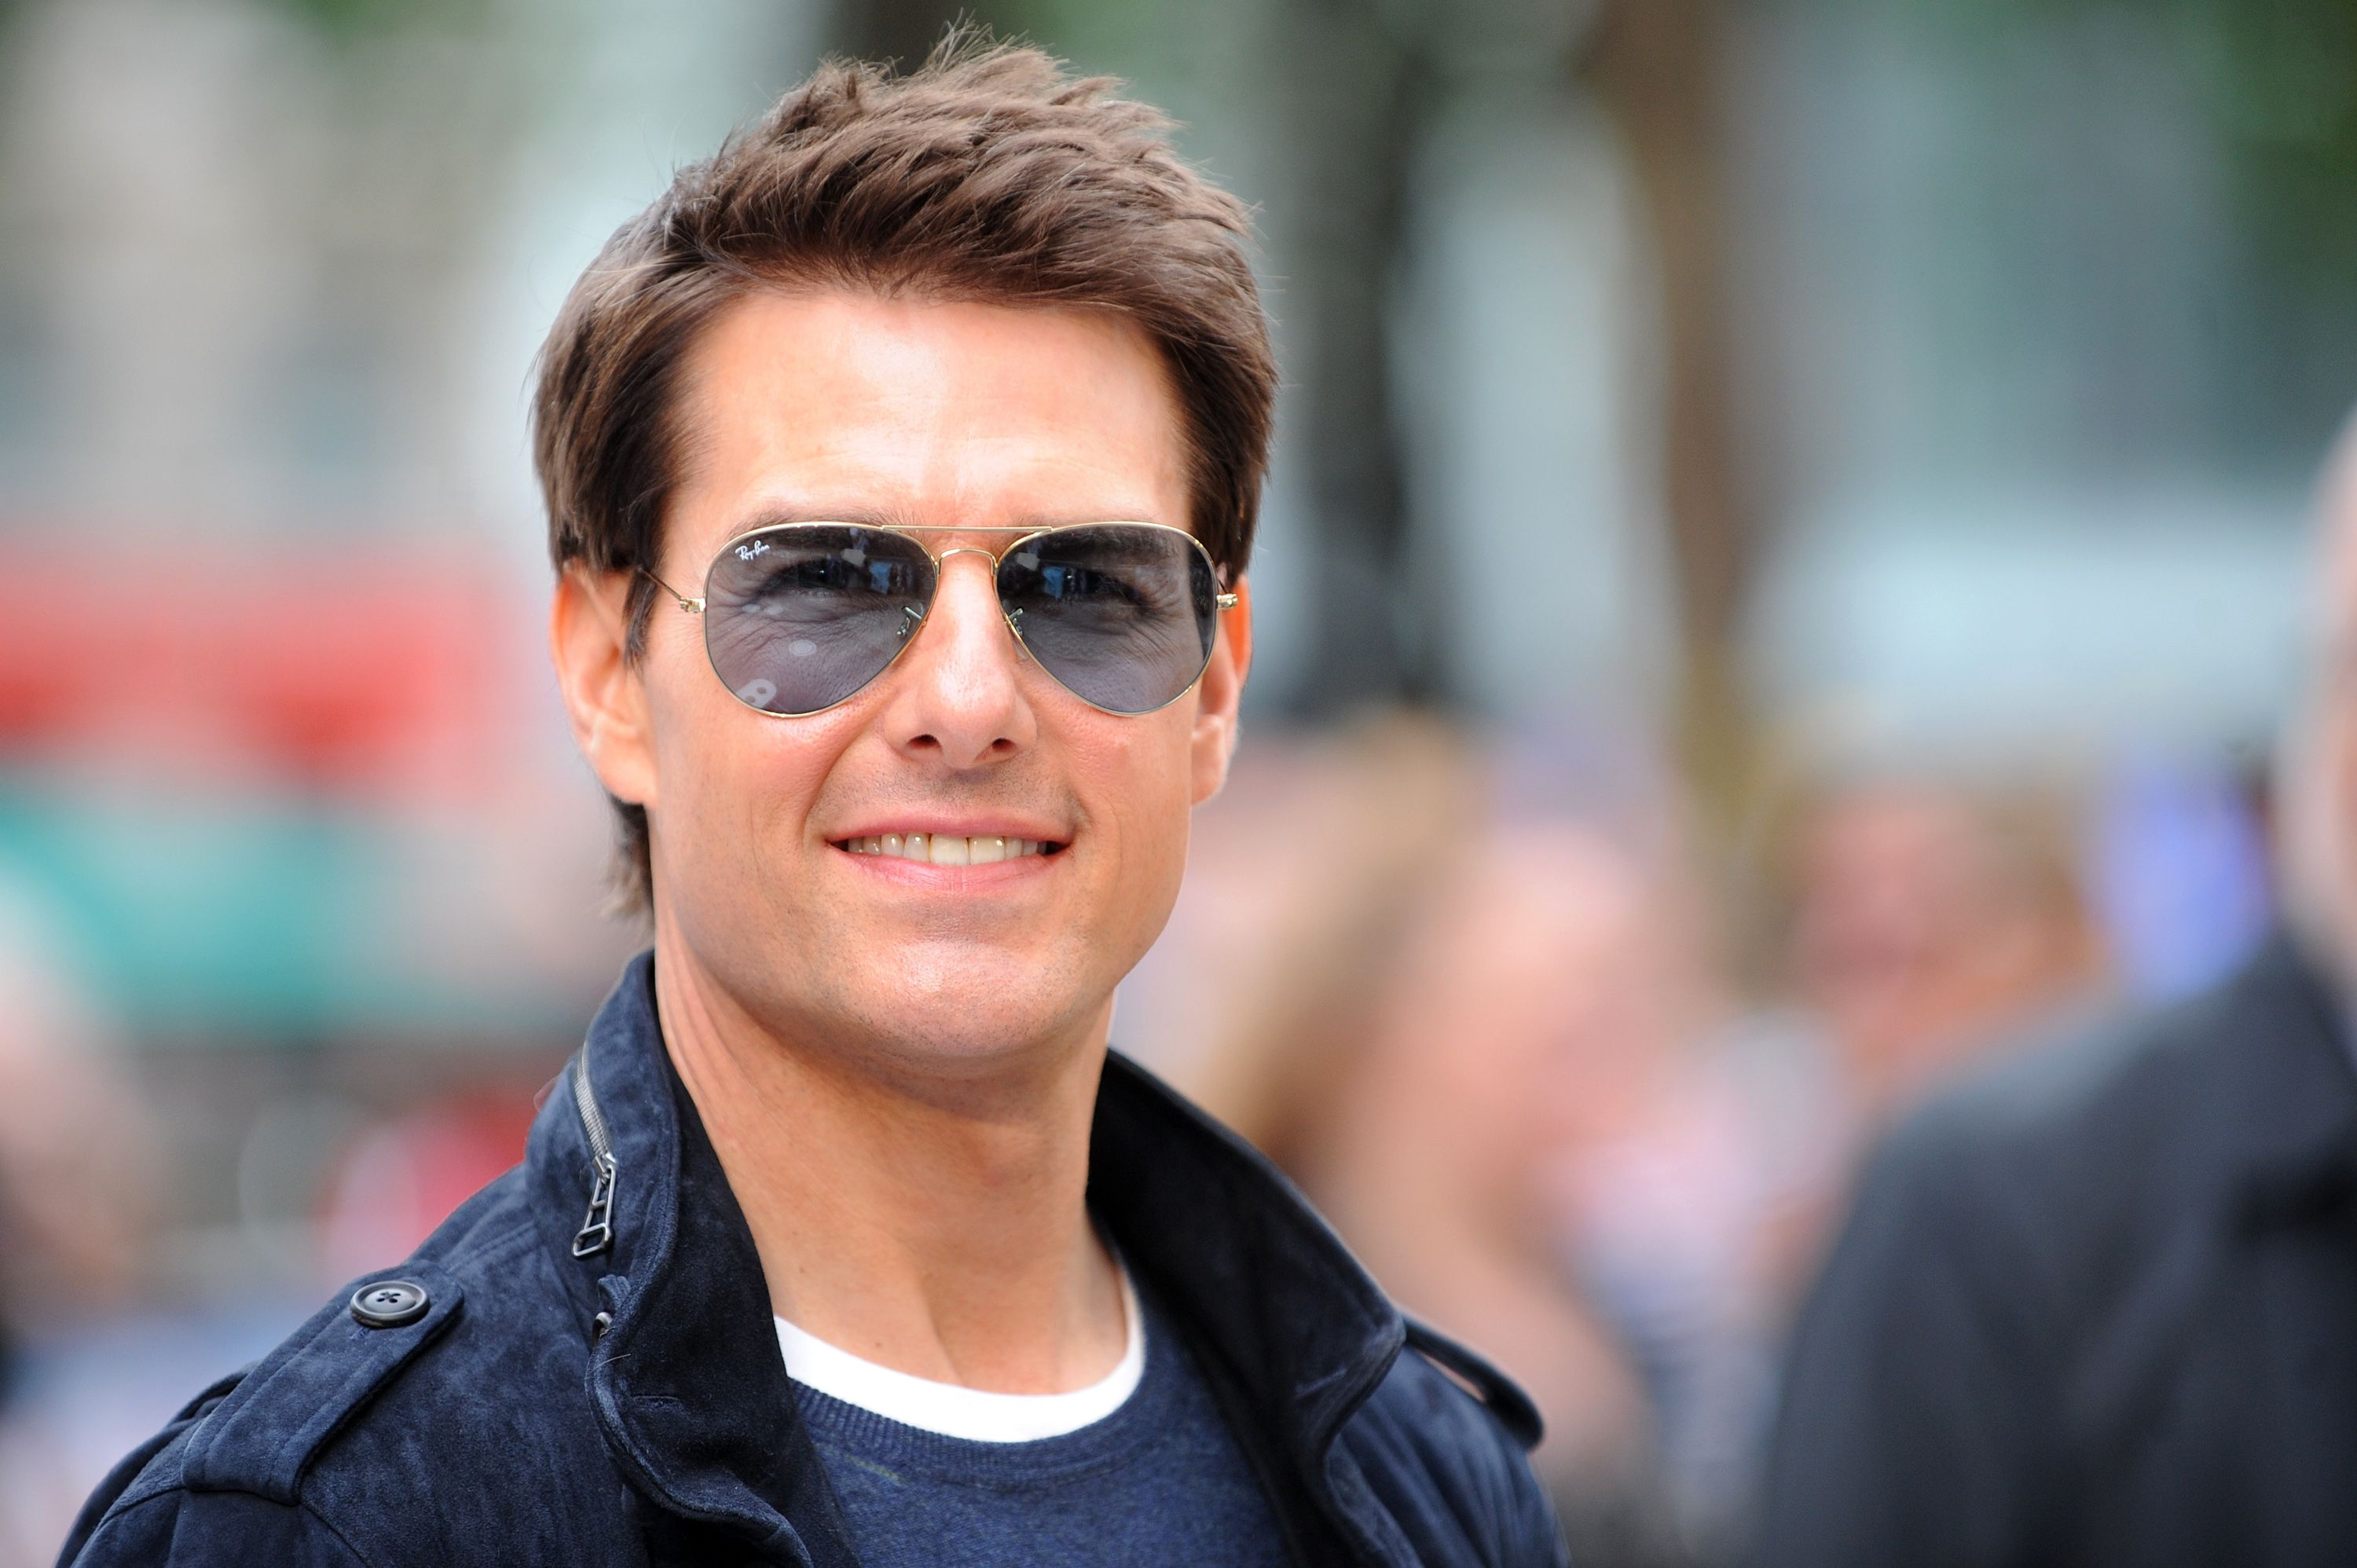 Top 10 Most Handsome Man In The World In 2016 Tom Cruise Most Handsome Men Tom Cruise Birthday